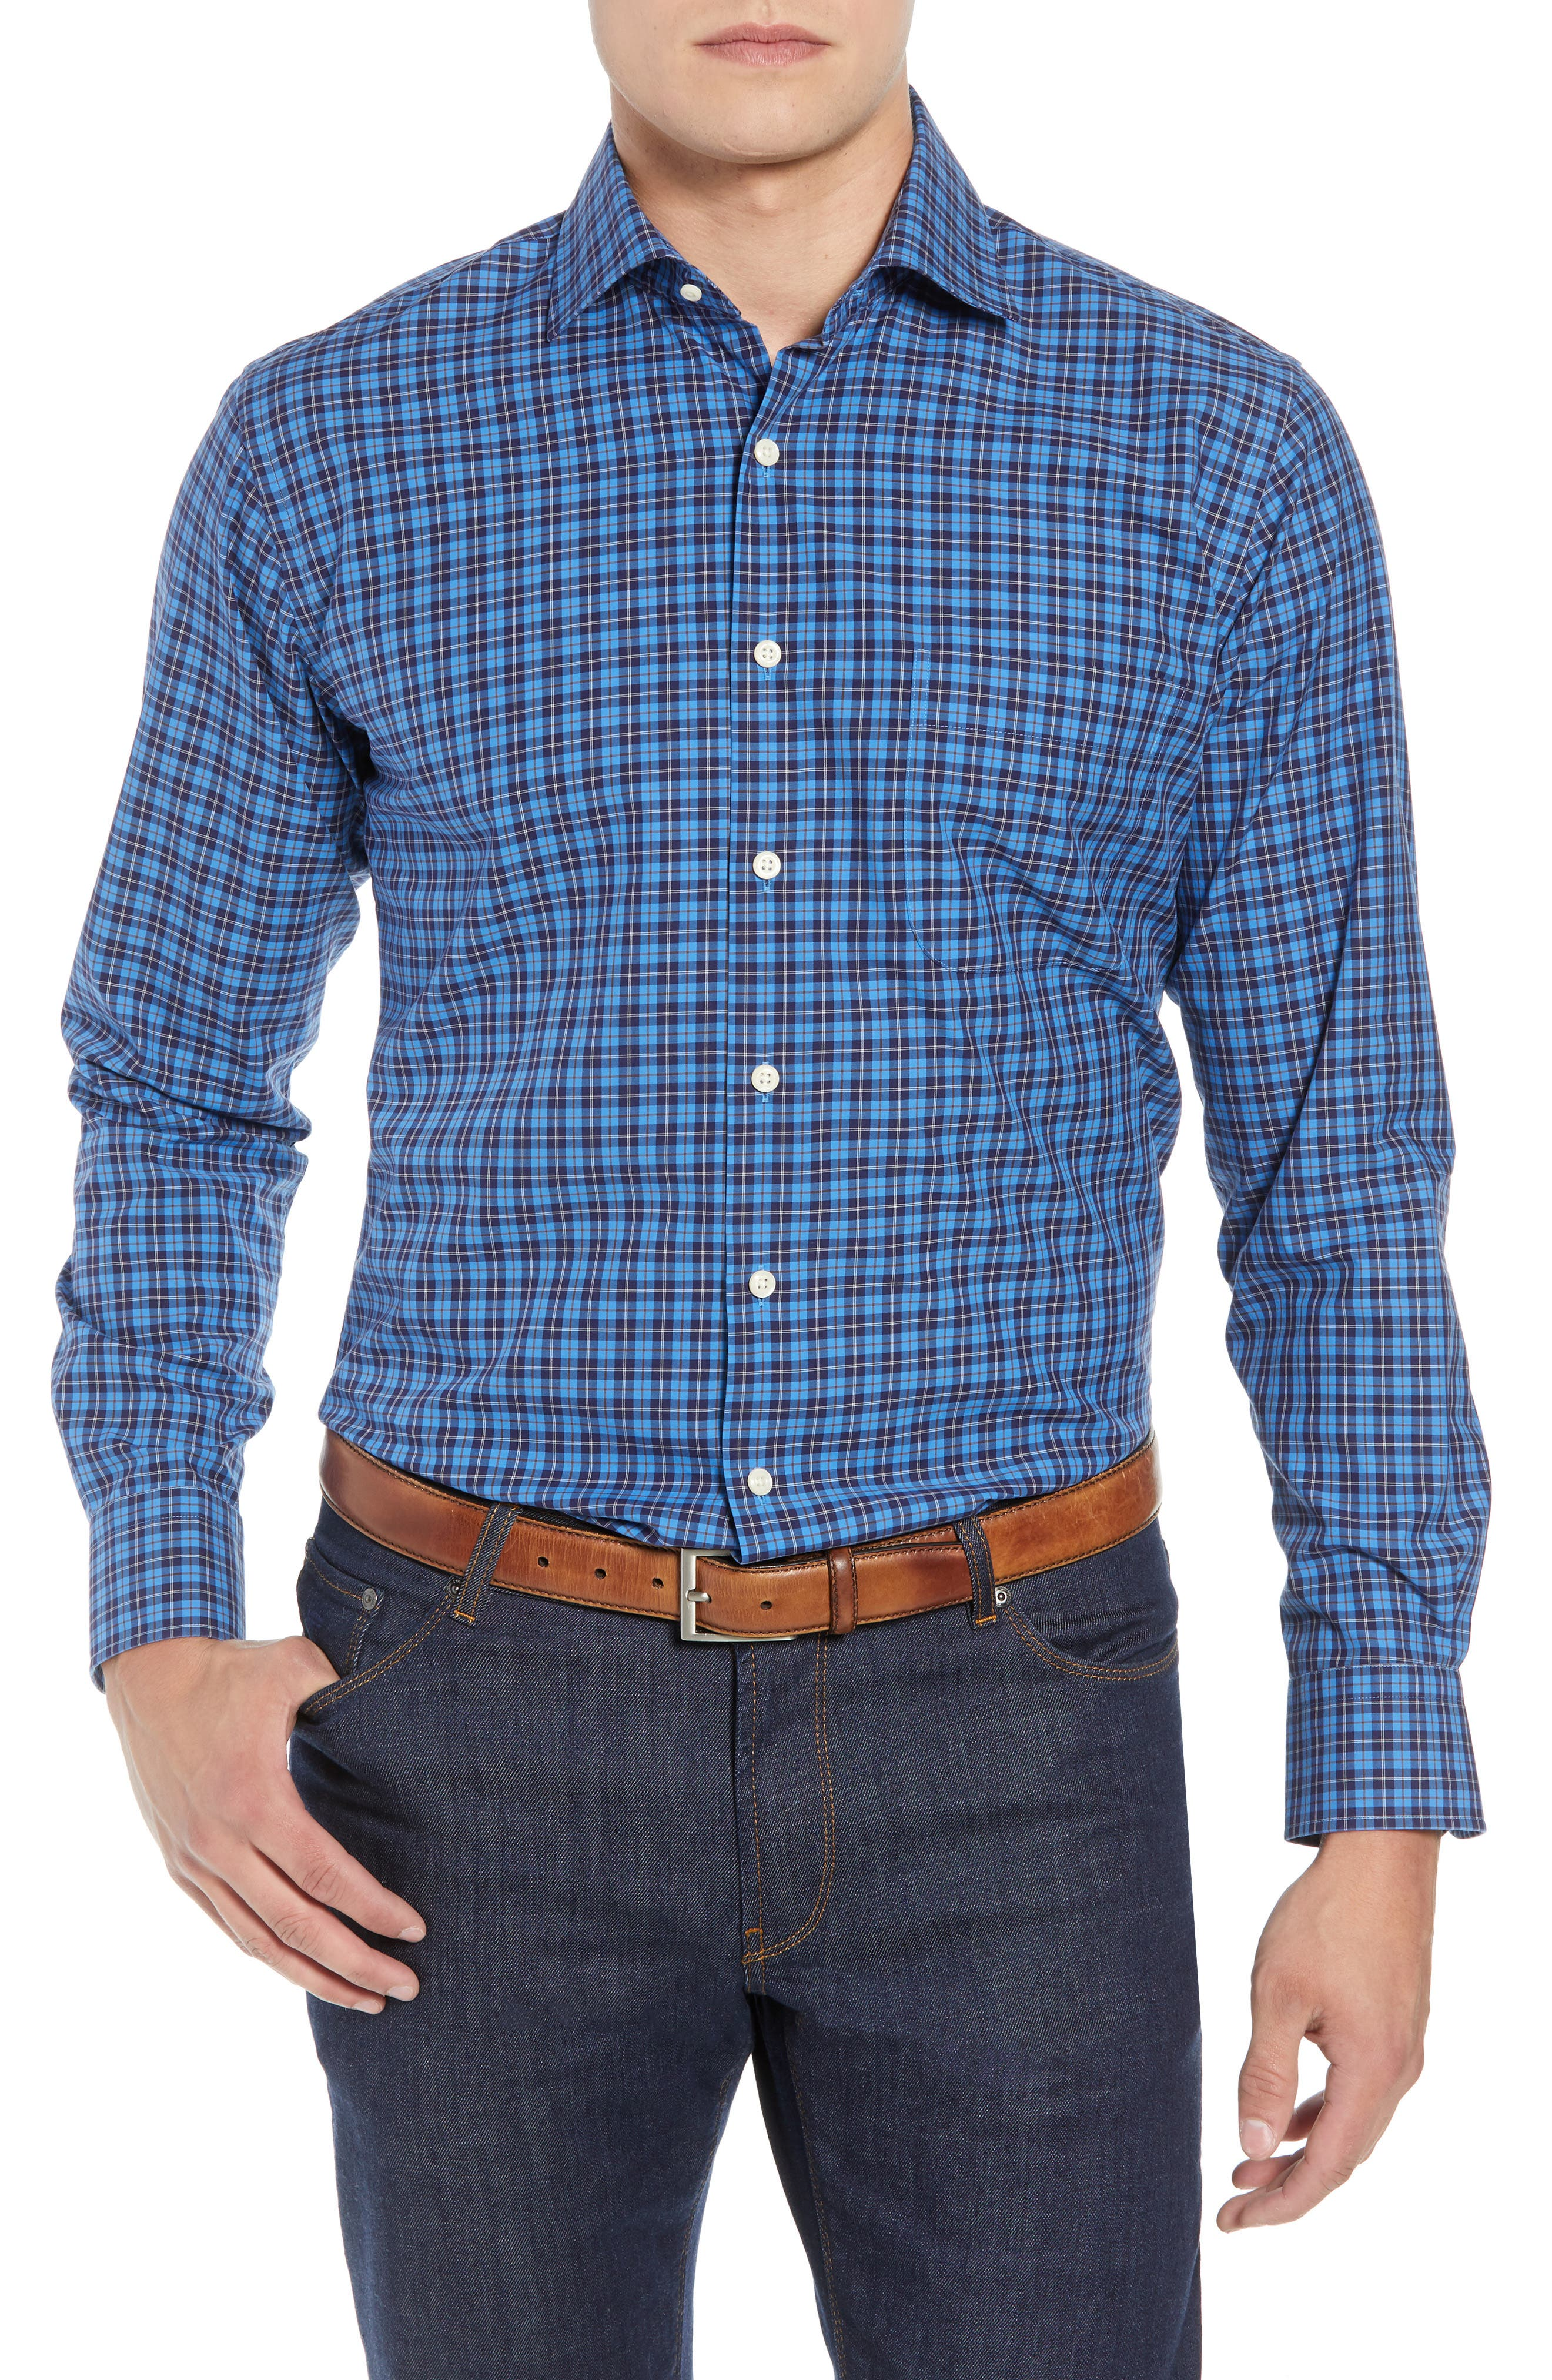 Northgate Plaid Sport Shirt,                             Main thumbnail 1, color,                             MARINA BLUE